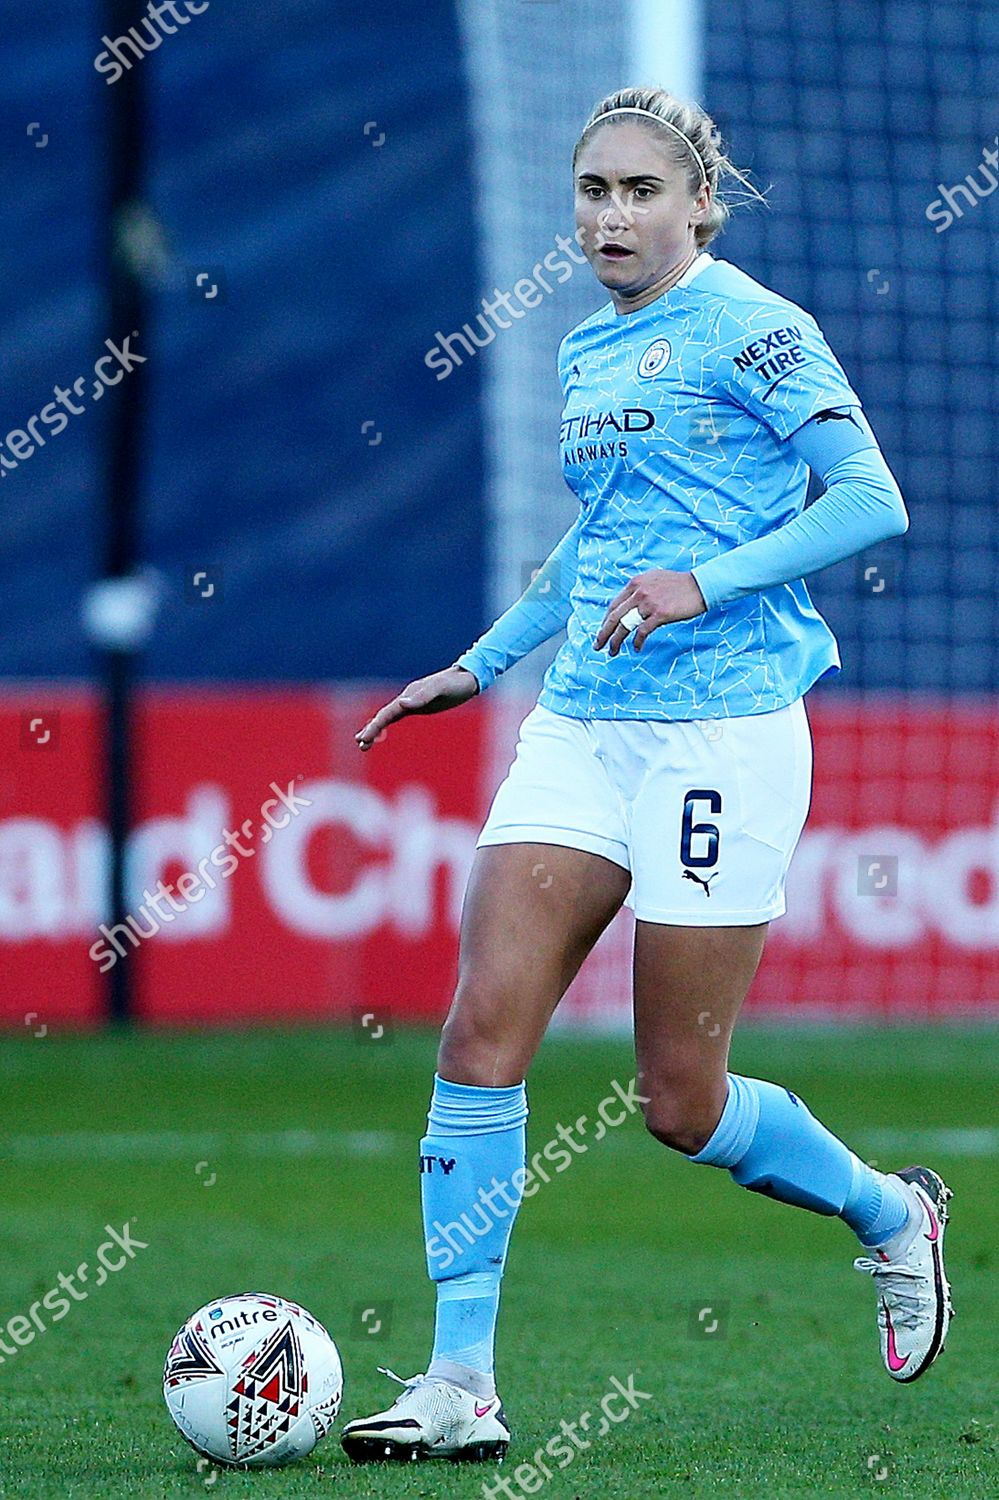 Stock photo of Liverpool Women v Manchester City Women, FA Women's Continental Cup - 04 Nov 2020